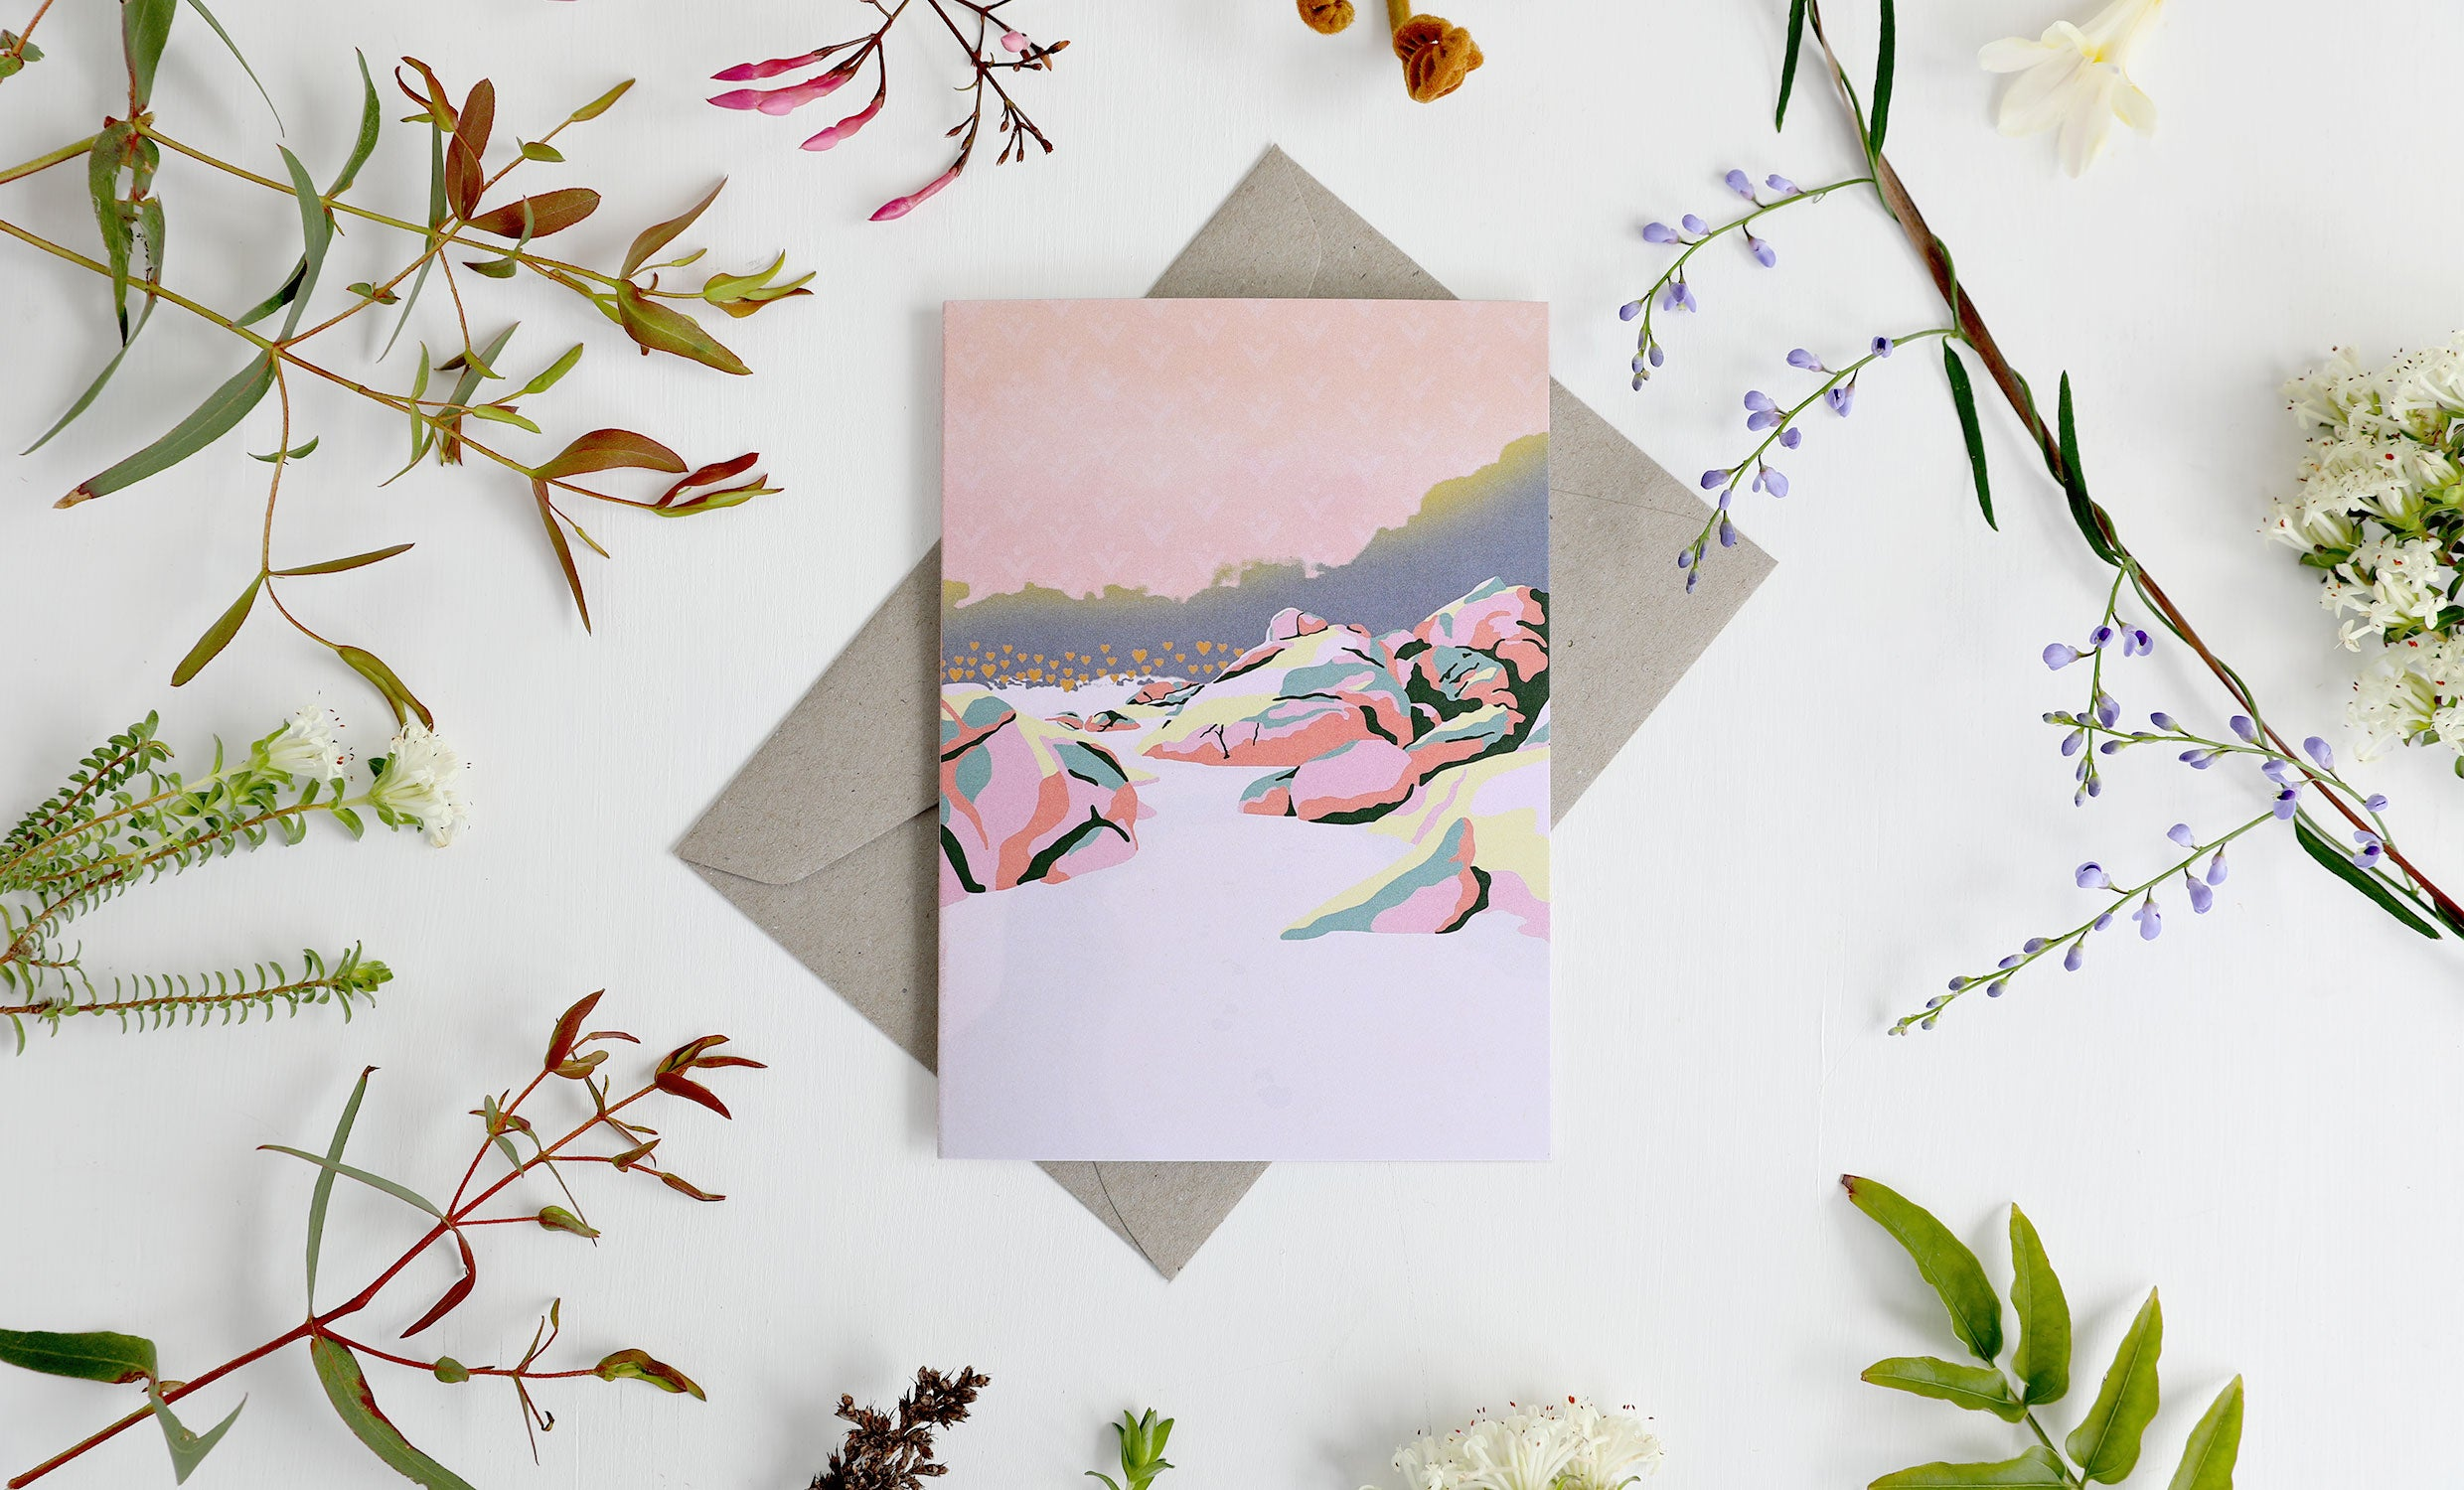 Beach abstract illustration on a recycled paper greeting card with envelope, surrounded by native Australian leaves and flowers.